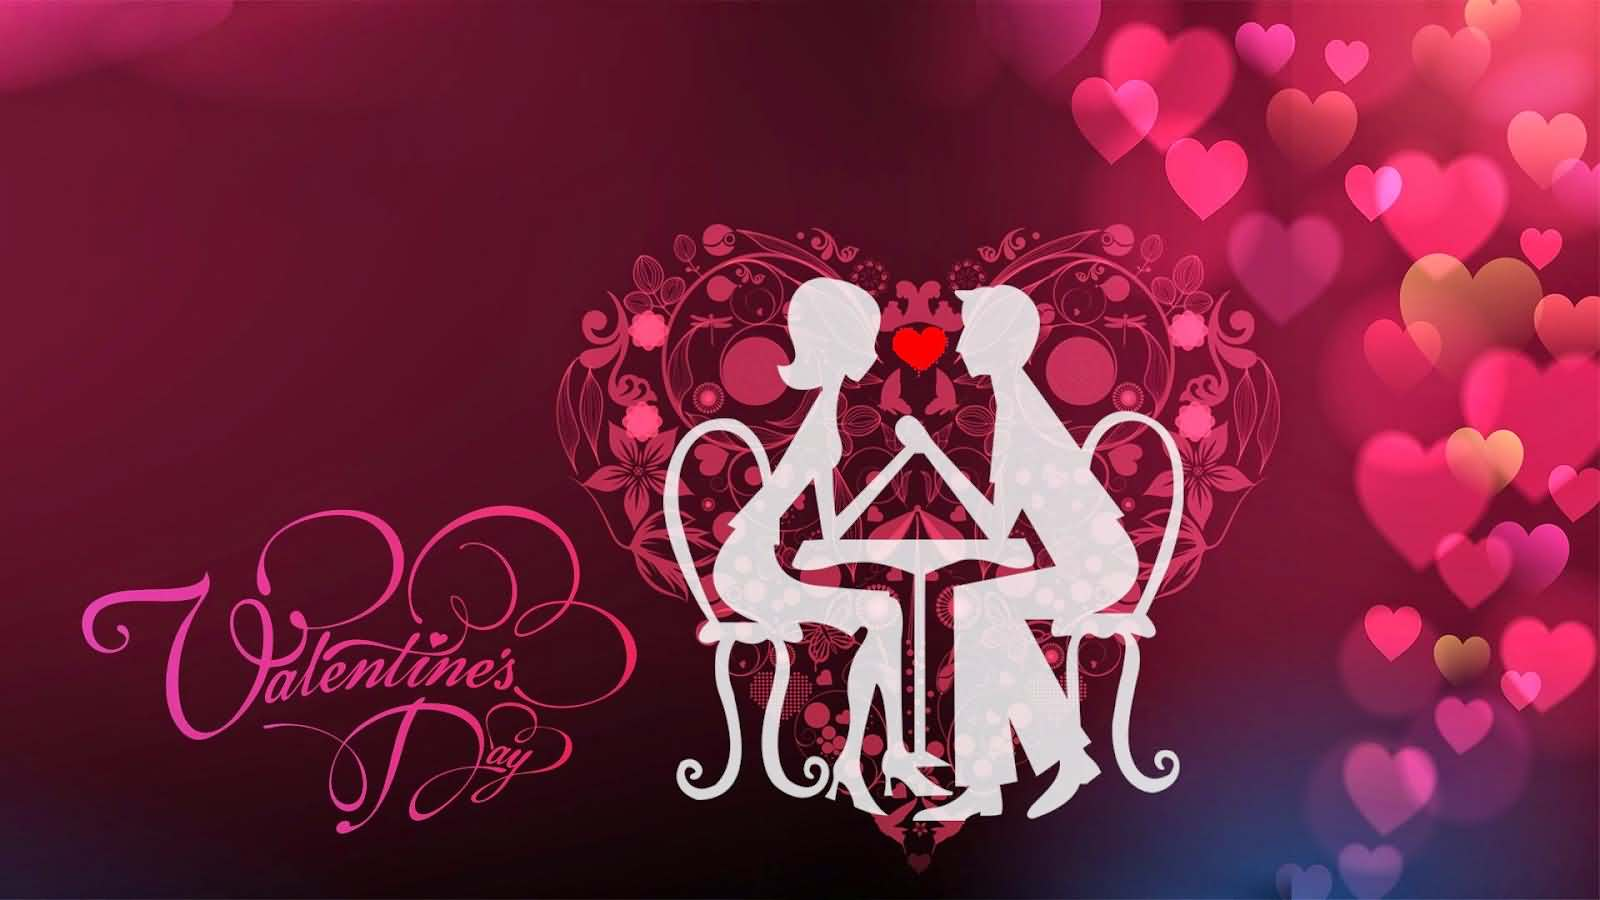 Happy Valentines Day Lovely Couple Heart Background Wallpaper